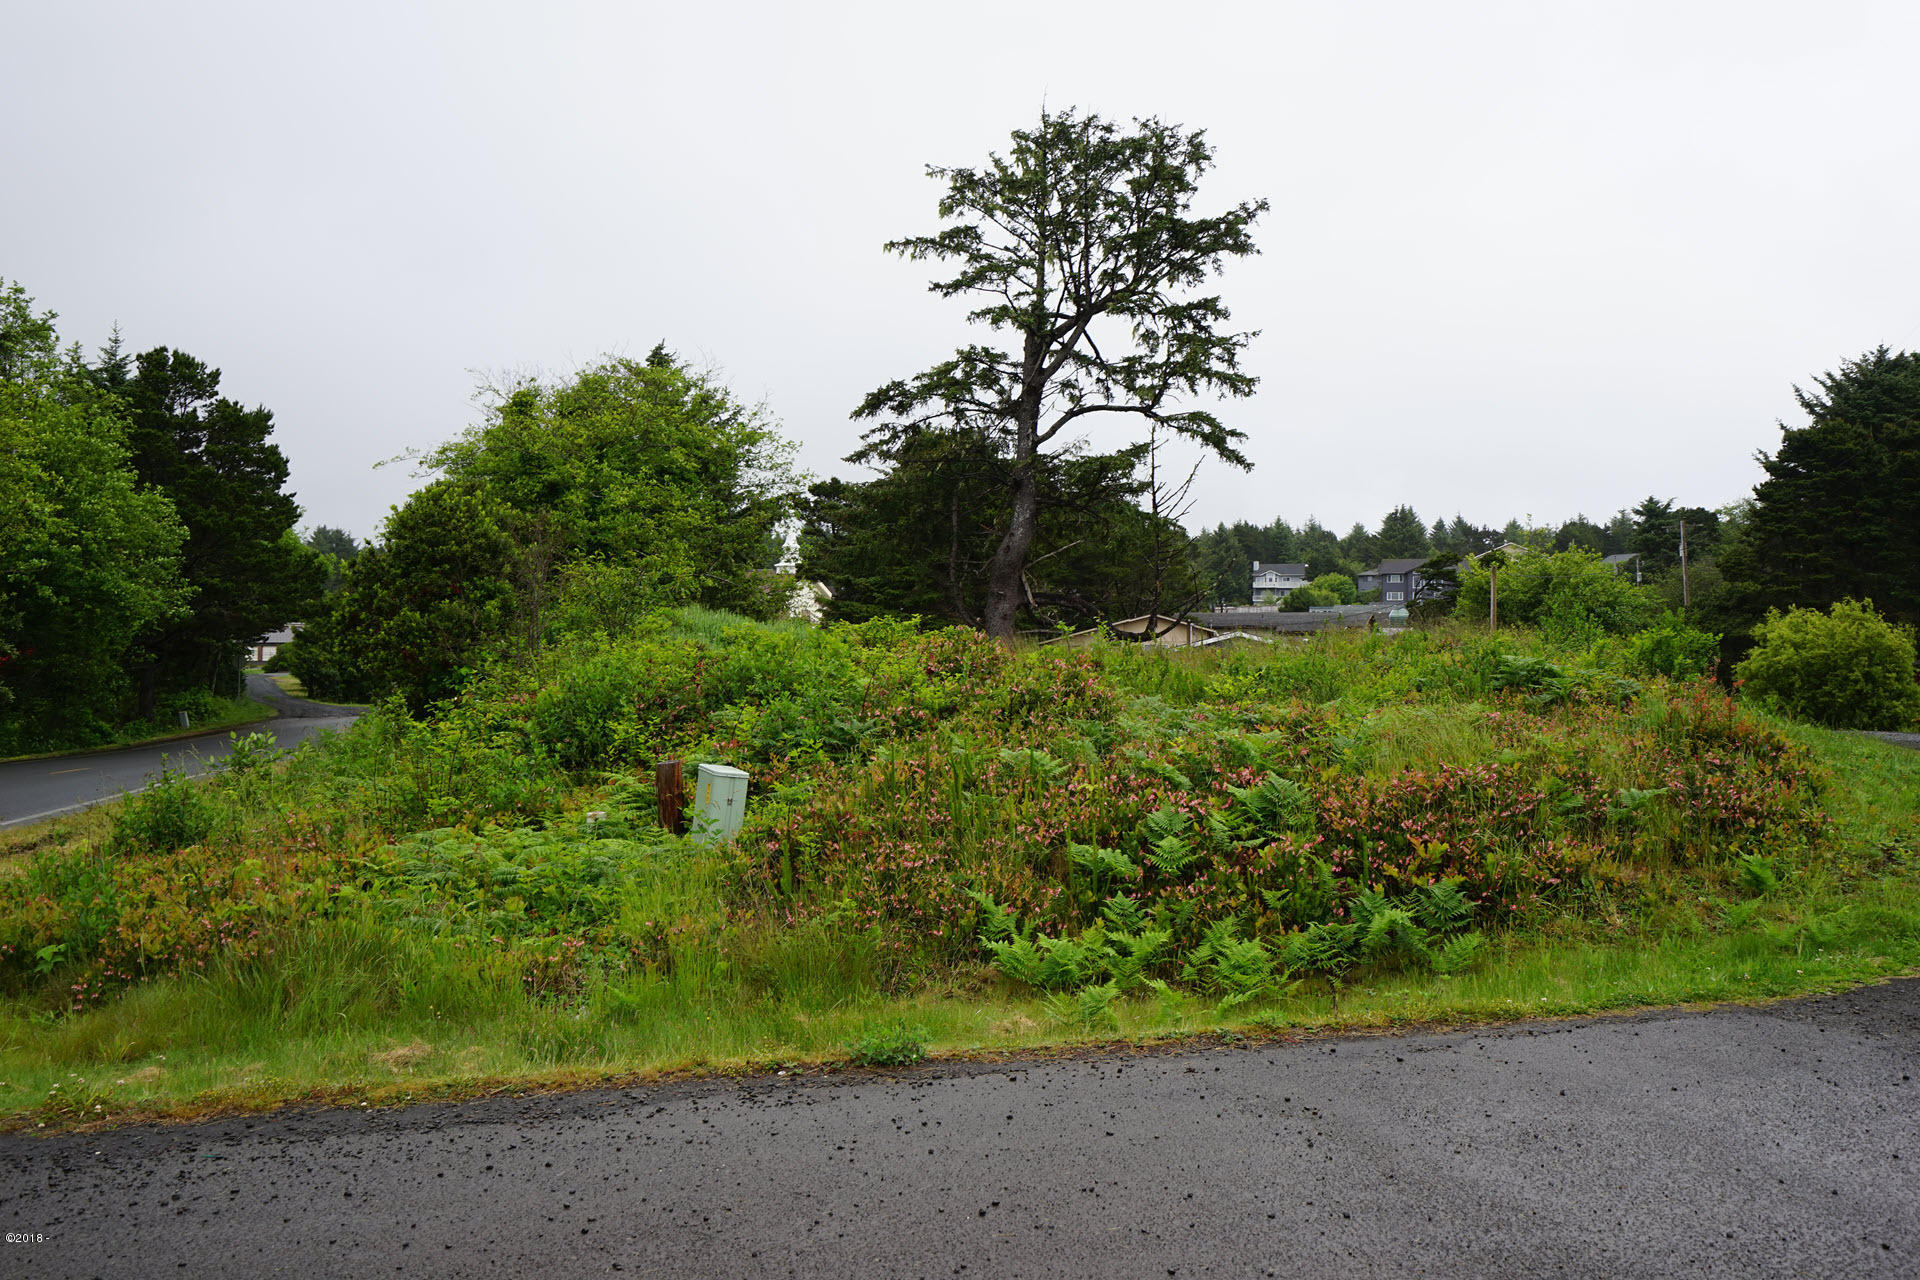 1106/05 SW Tara Ln, Waldport, OR 97394 - Lot View 1